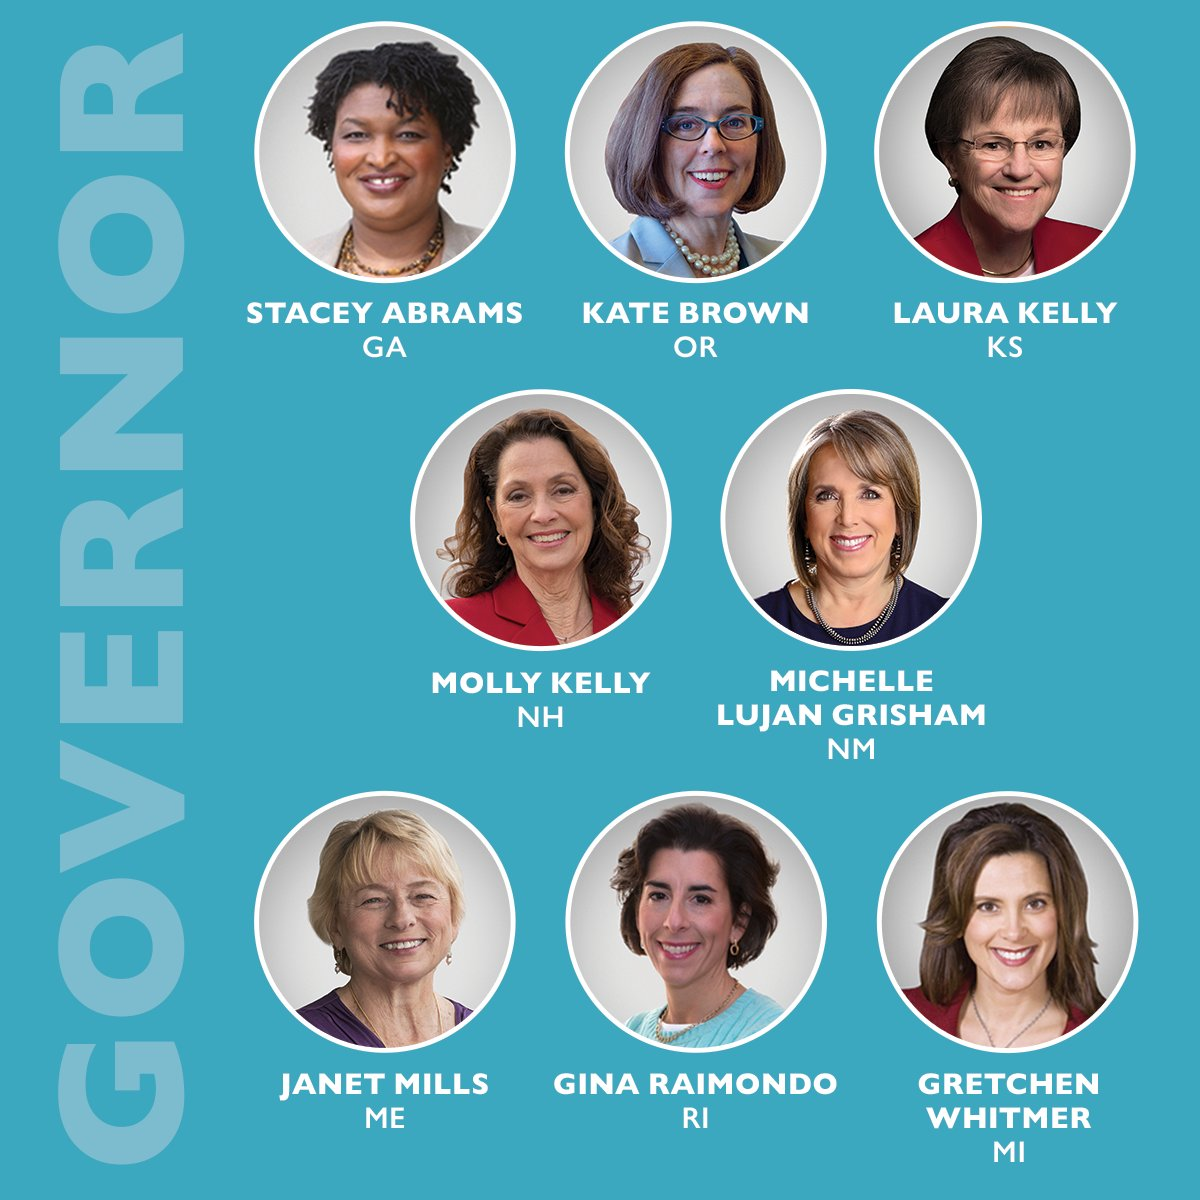 Governors are our first line of defense. We need to elect these six women who can flip seats from red to blue, plus two women in must-hold blue seats. Donate now: https://t.co/tzIoVTtDya https://t.co/5vAJmwDnqJ